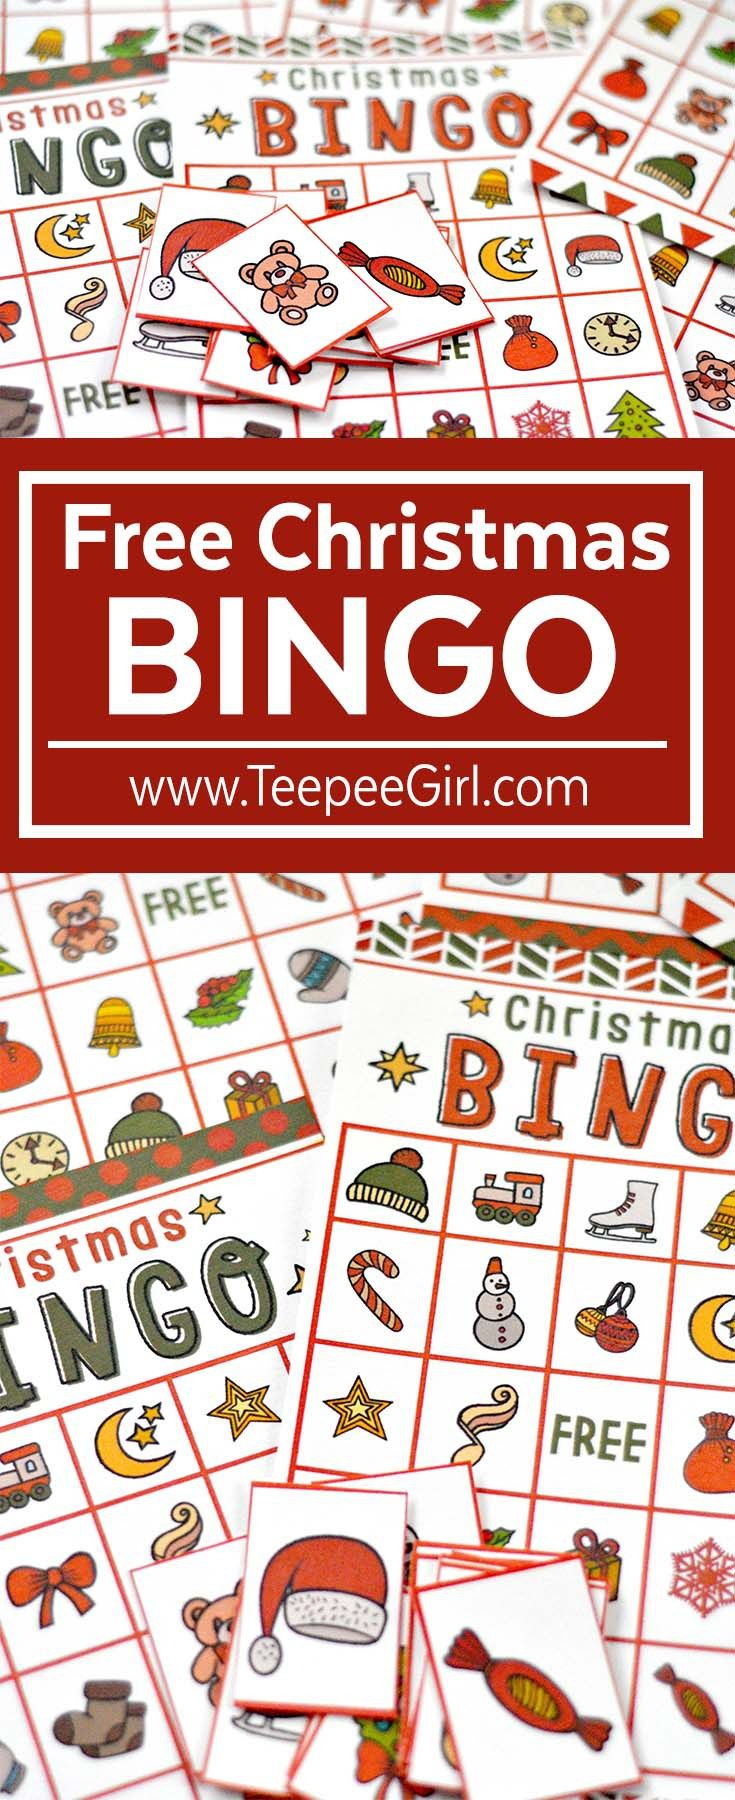 This free bingo game is the perfect (and easy!) way to add holiday fun to all your Christmas parties this year! Click here to get your free bingo game (and other great holiday ideas) from www.TeepeeGirl.com!